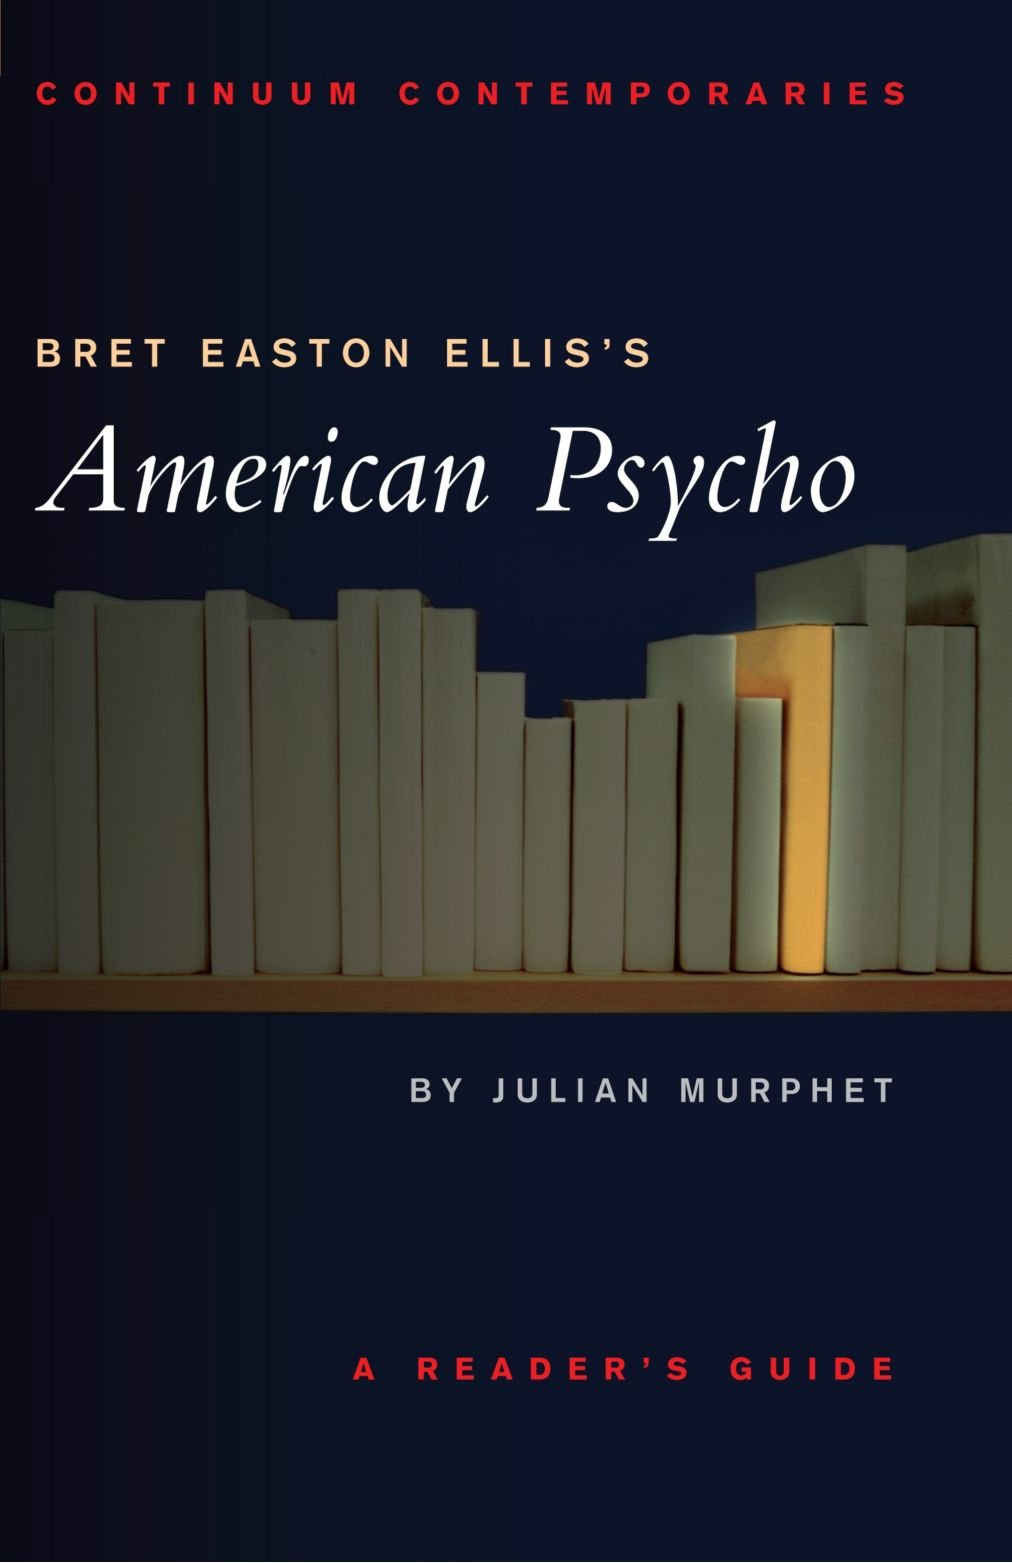 bret easton ellis s american psycho a reader s guide continuum bret easton ellis s american psycho a reader s guide continuum contemporaries series co uk julian murphet 9780826452450 books